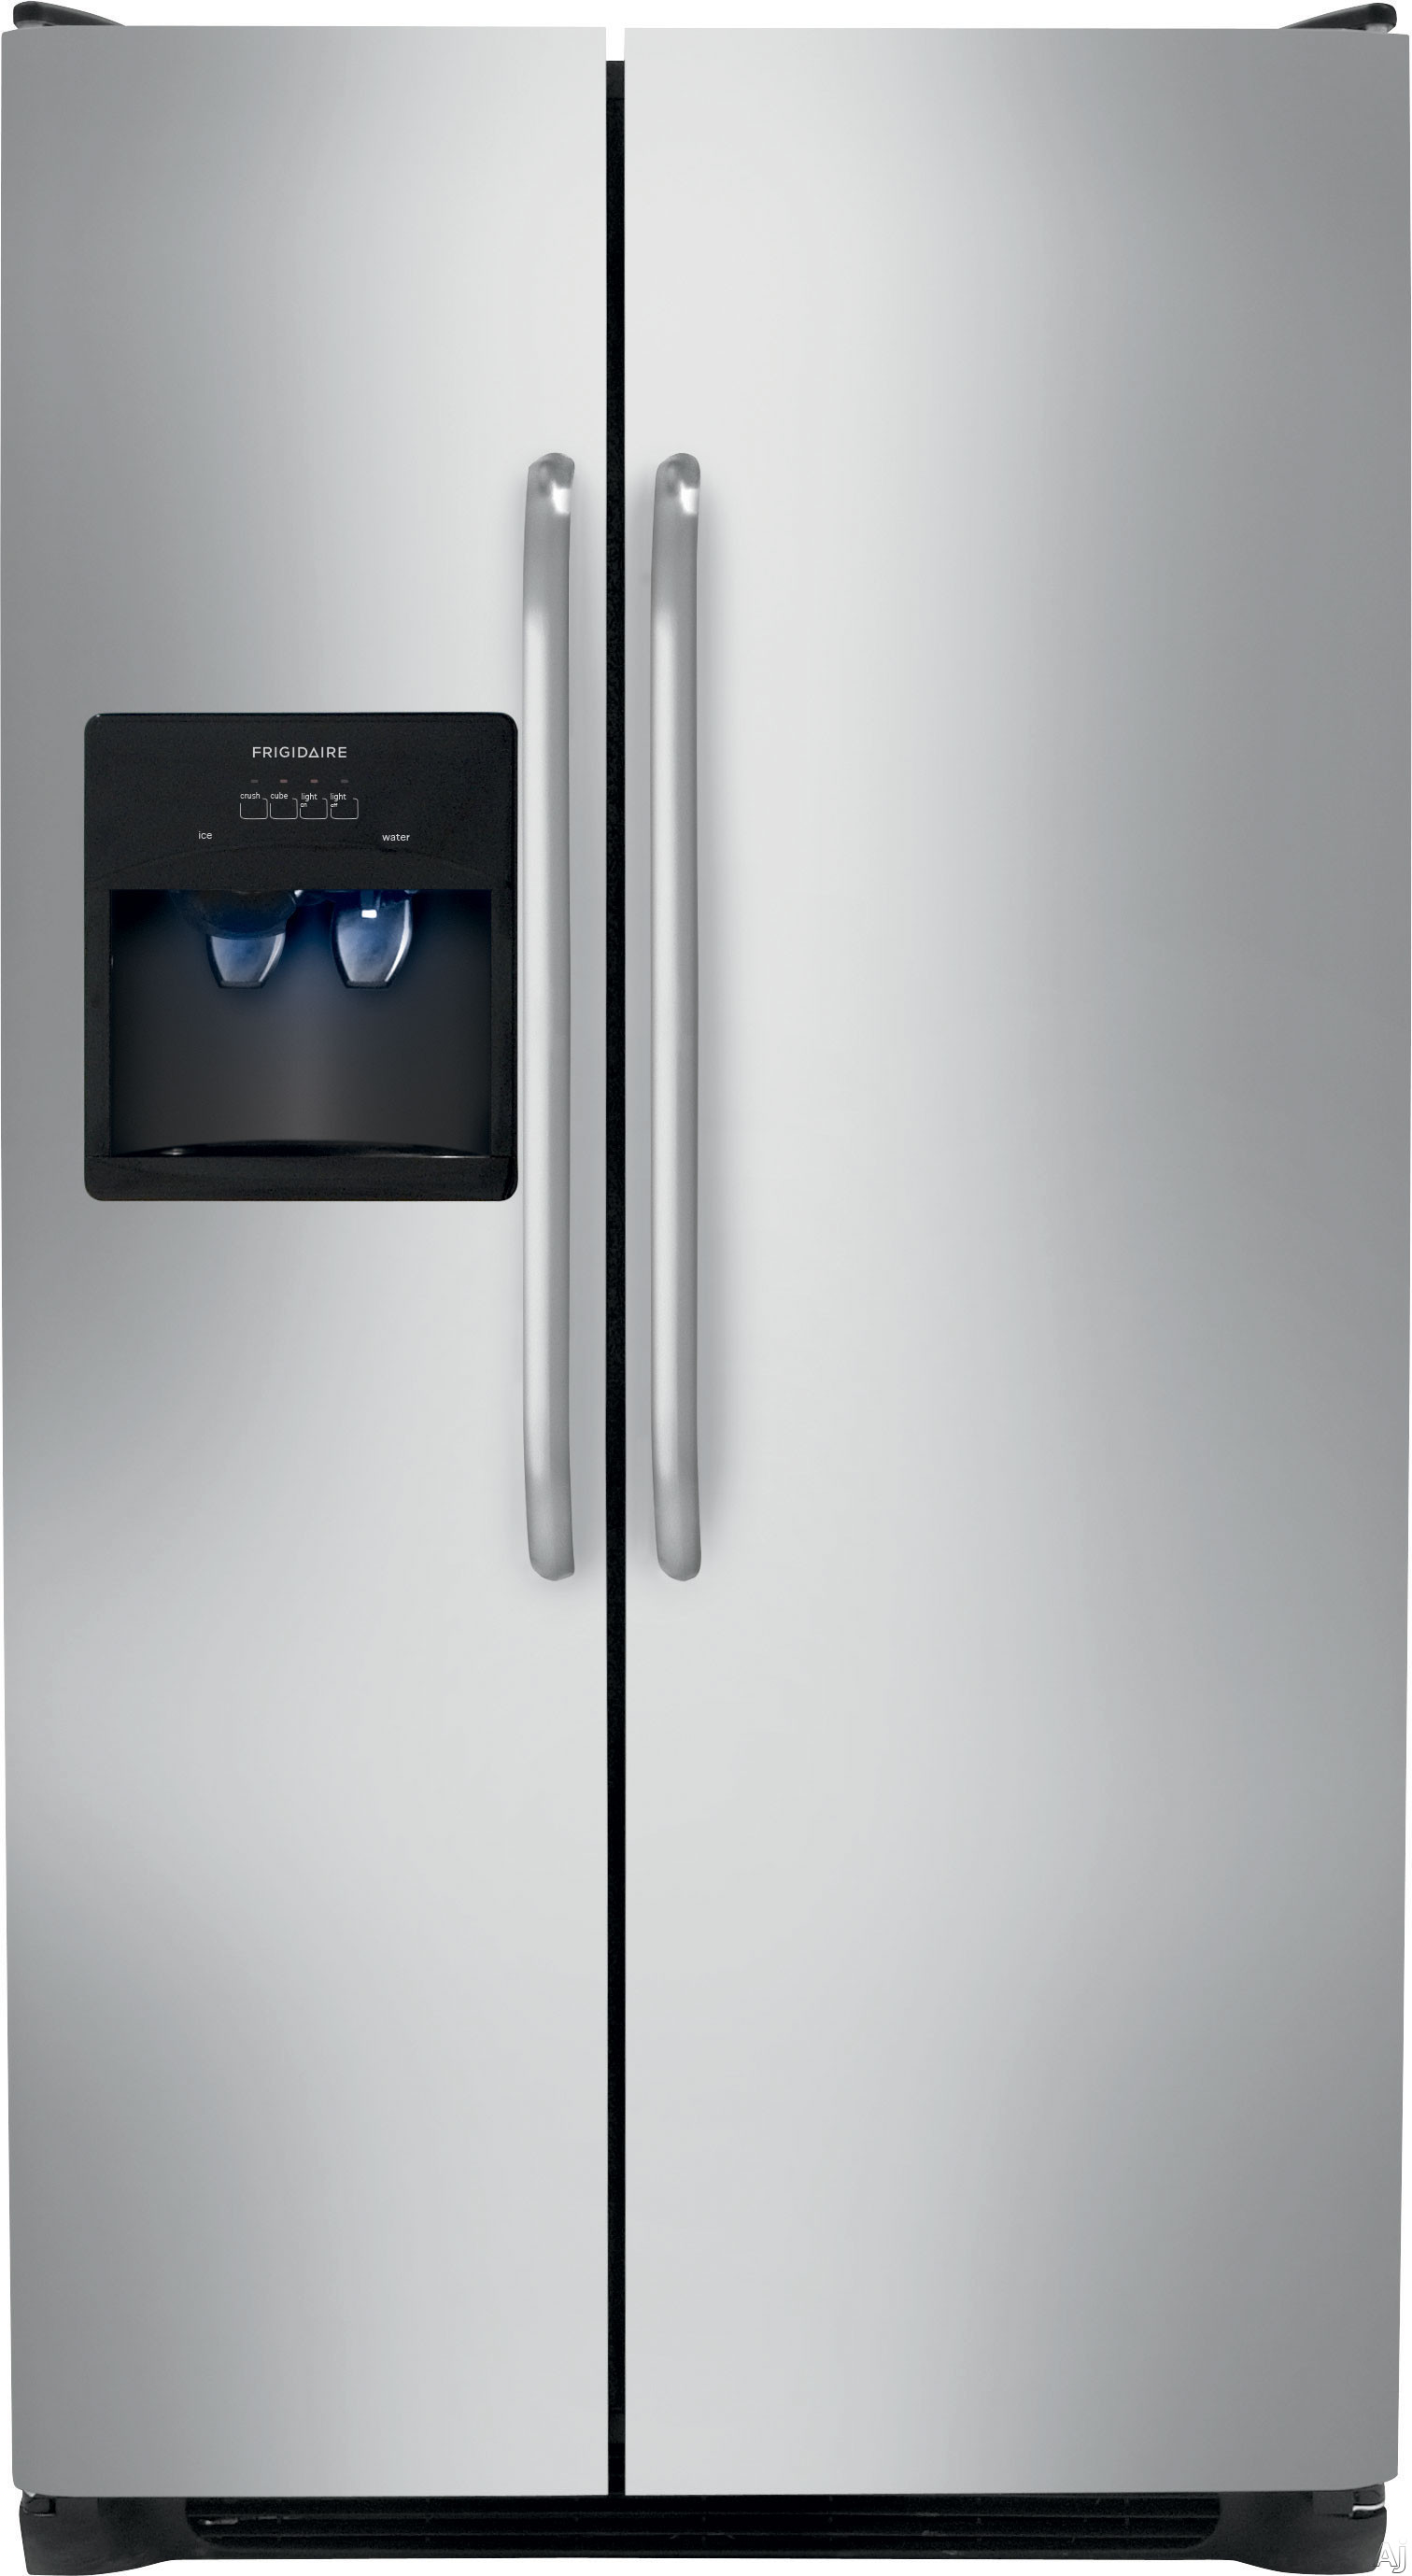 Frigidaire Ffss2614qs 26 0 Cu Ft Side By Side